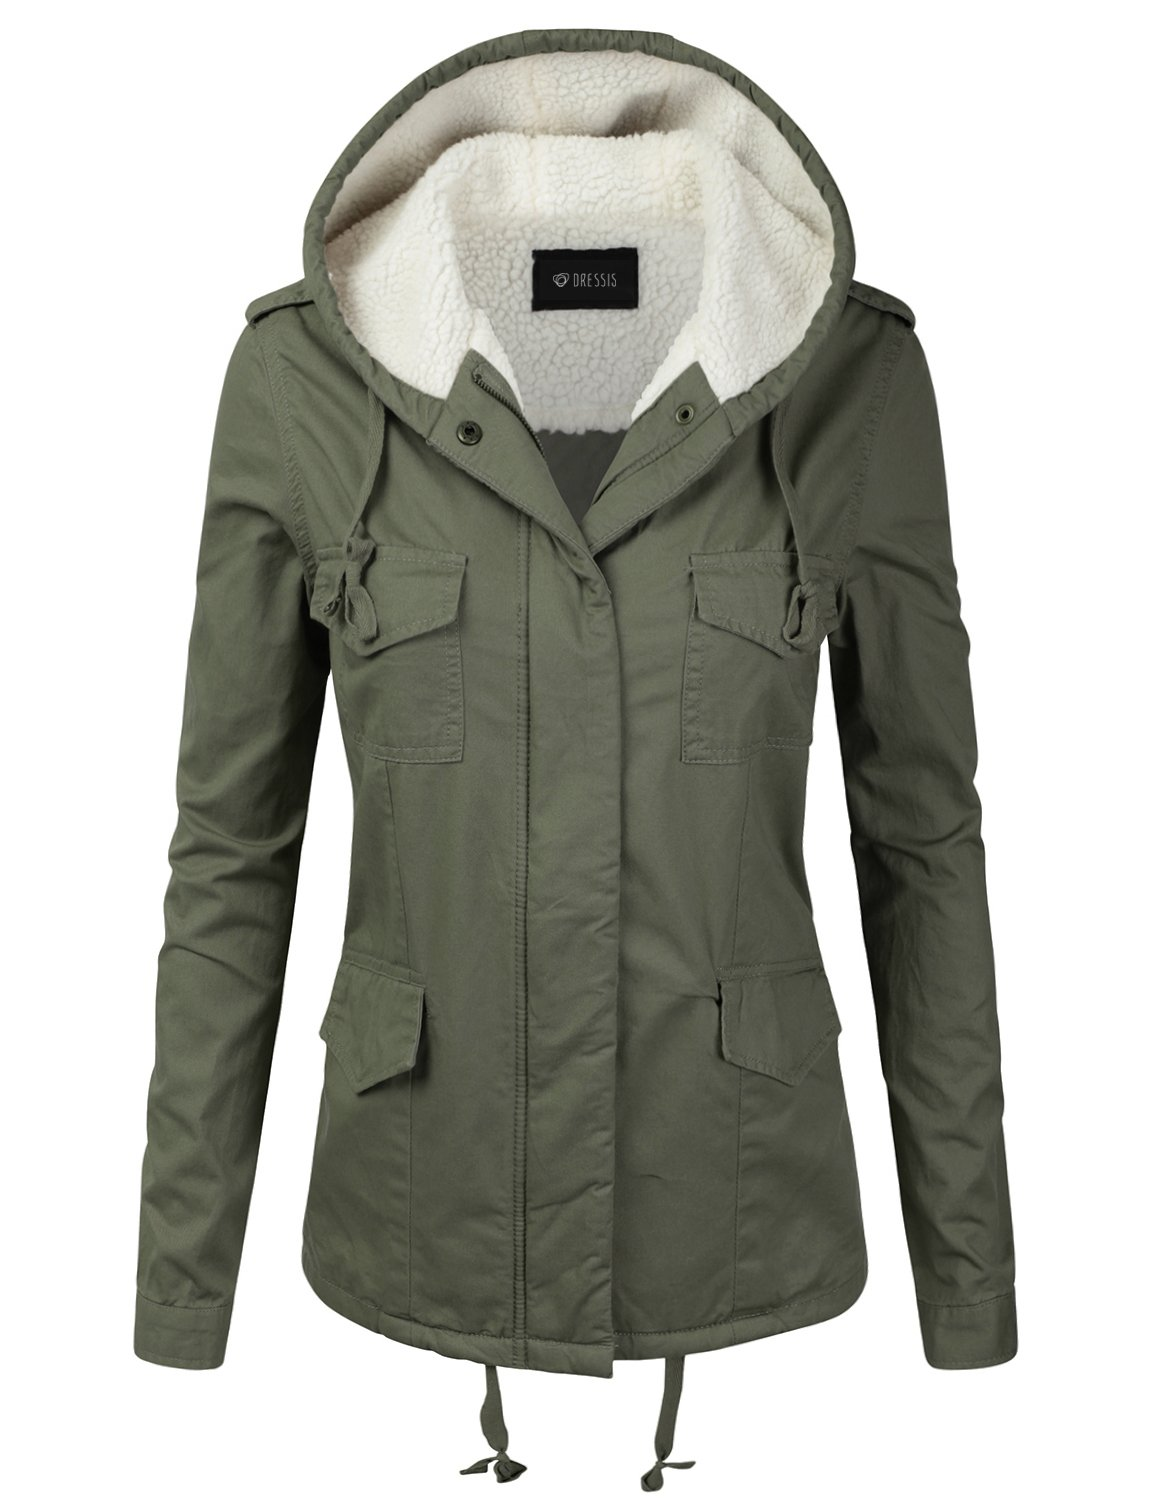 DRESSIS Women's Woven Fur-Lined Hooded Cotton Utility Jacket Parka OLIVE M